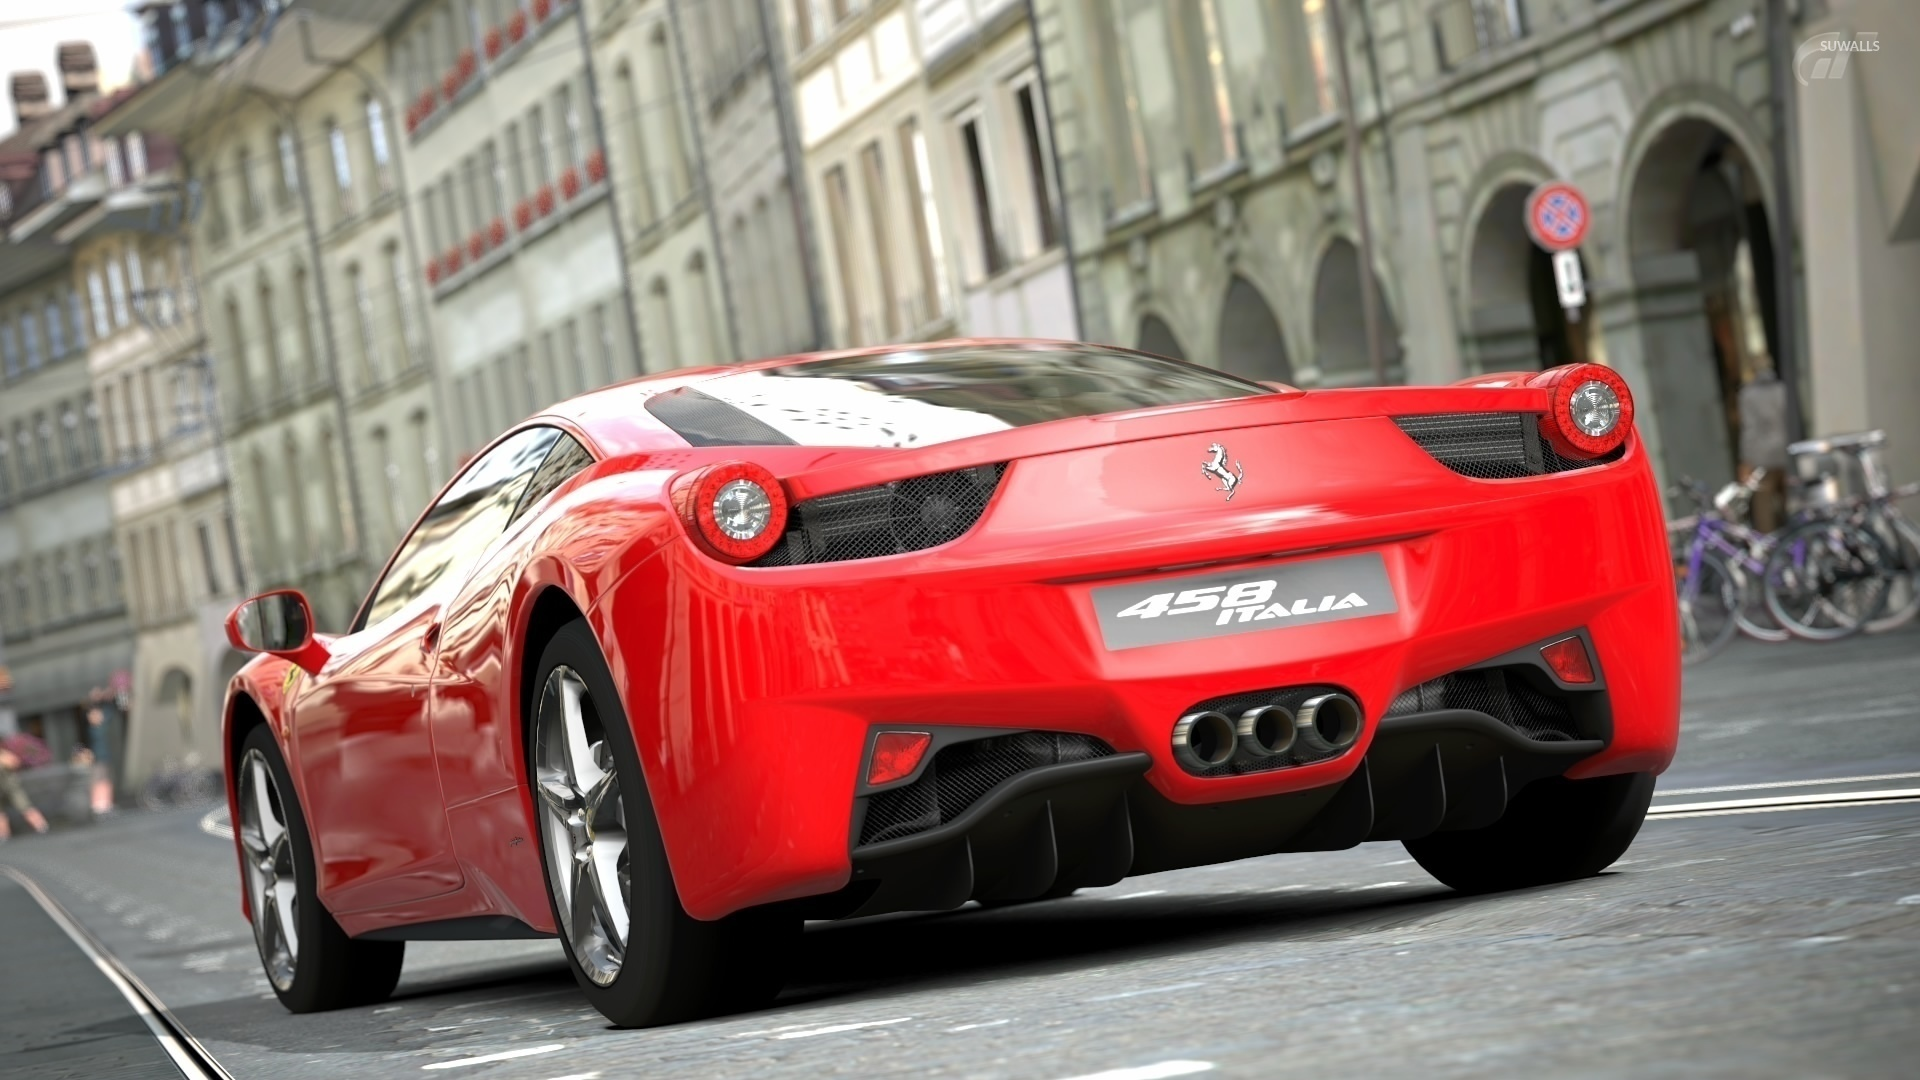 458 red cars - photo #45